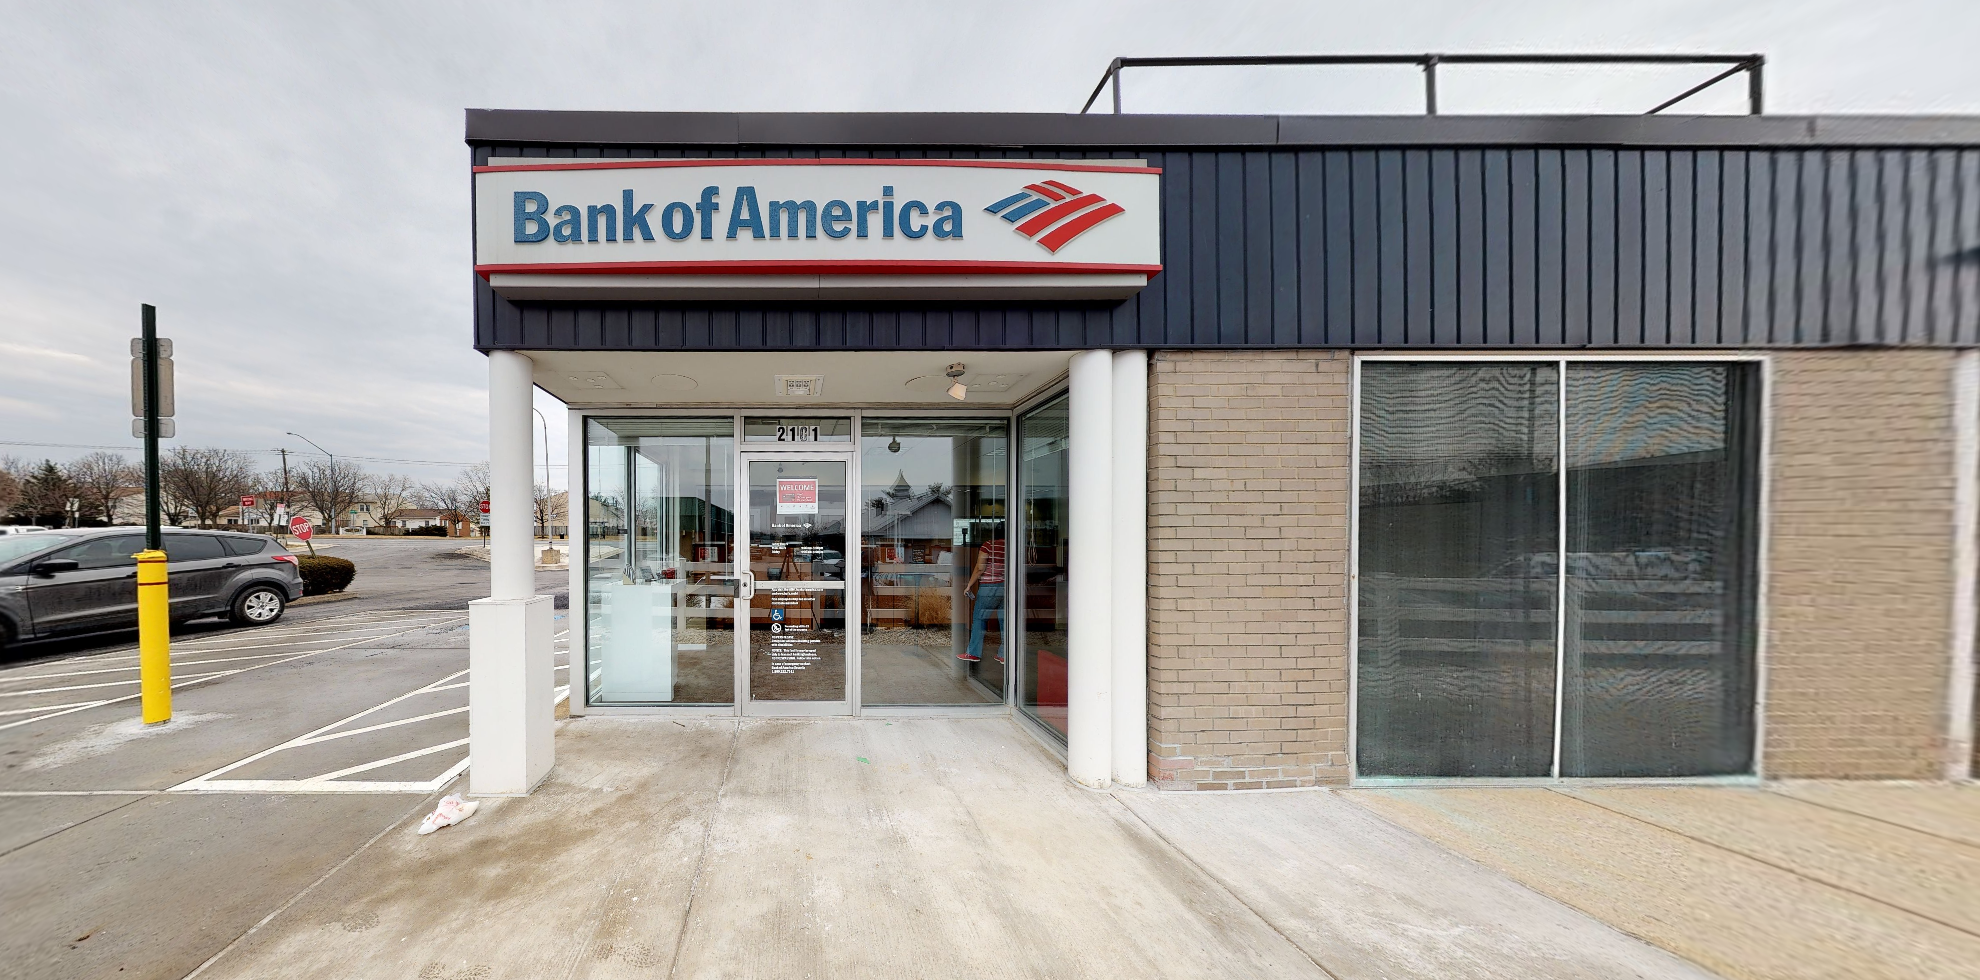 Bank of America financial center with drive-thru ATM | 2101 Bel Pre Rd, Silver Spring, MD 20906